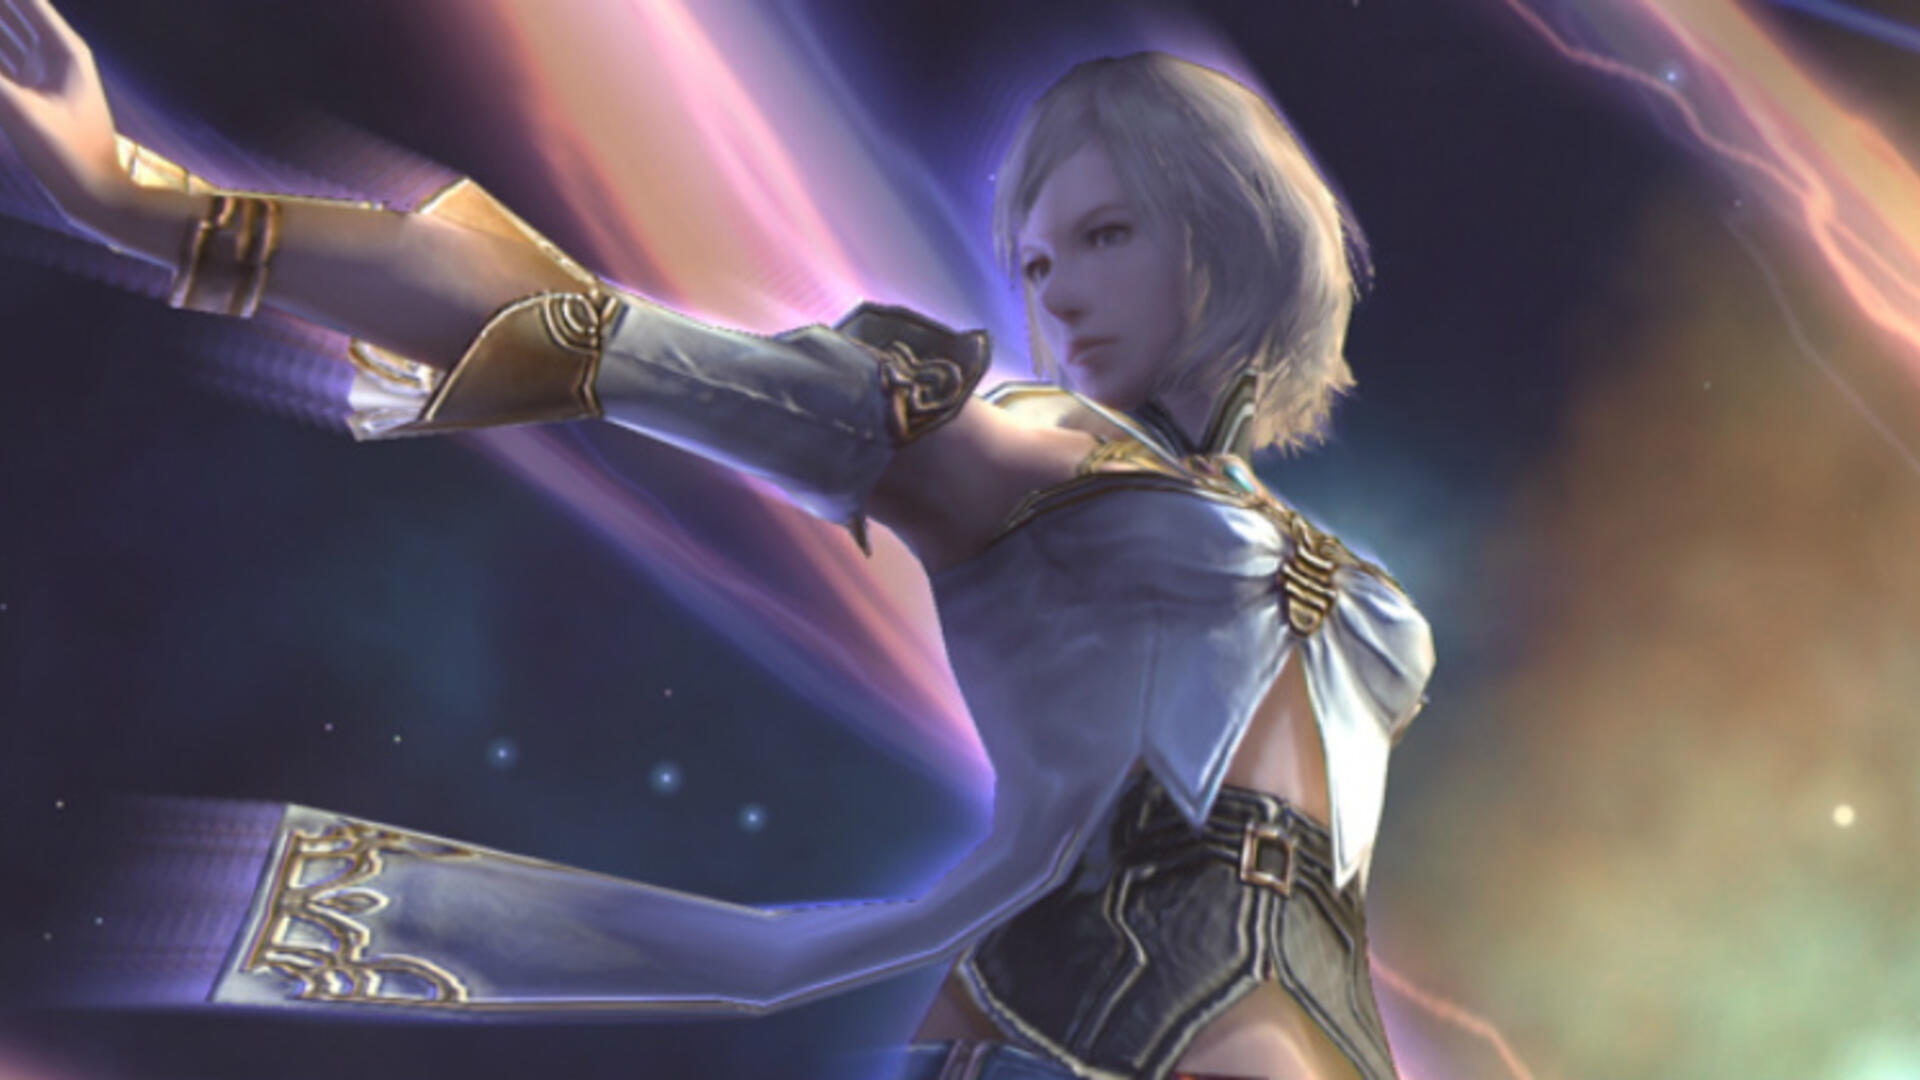 Final Fantasy XII Comes to PlayStation 4 with The Zodiac Age